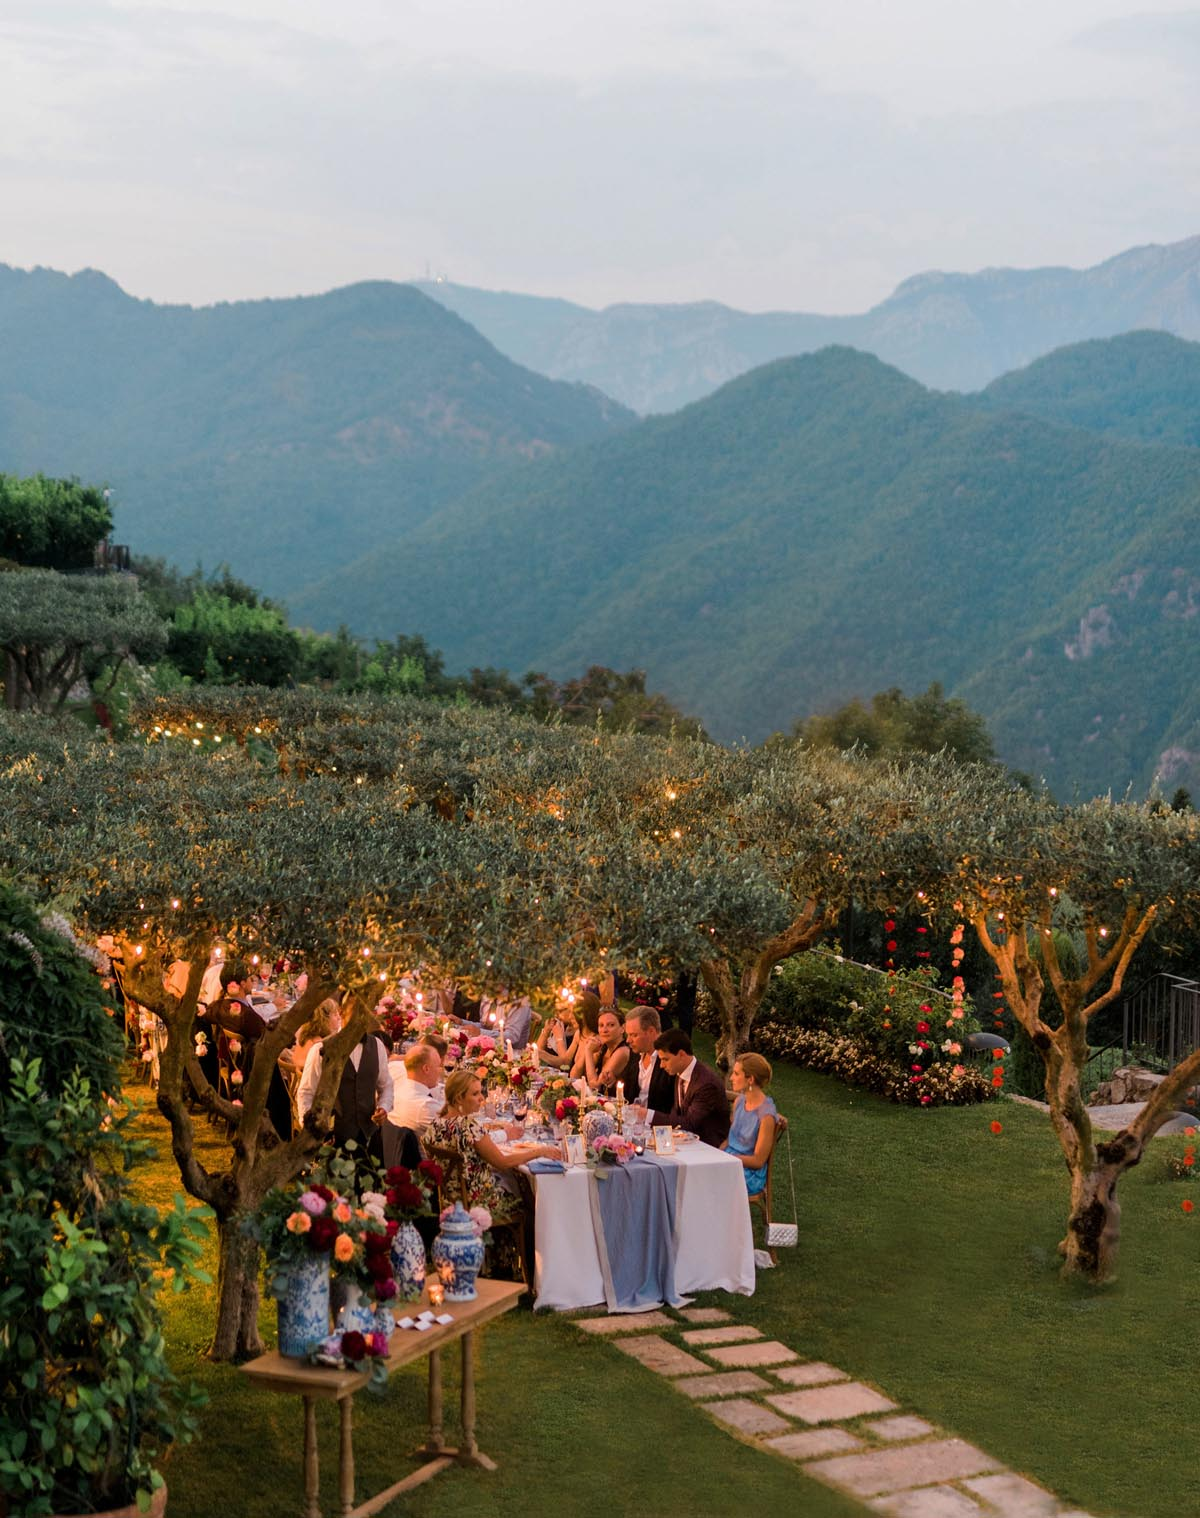 Belmond-Caruso-wedding-in-Ravello